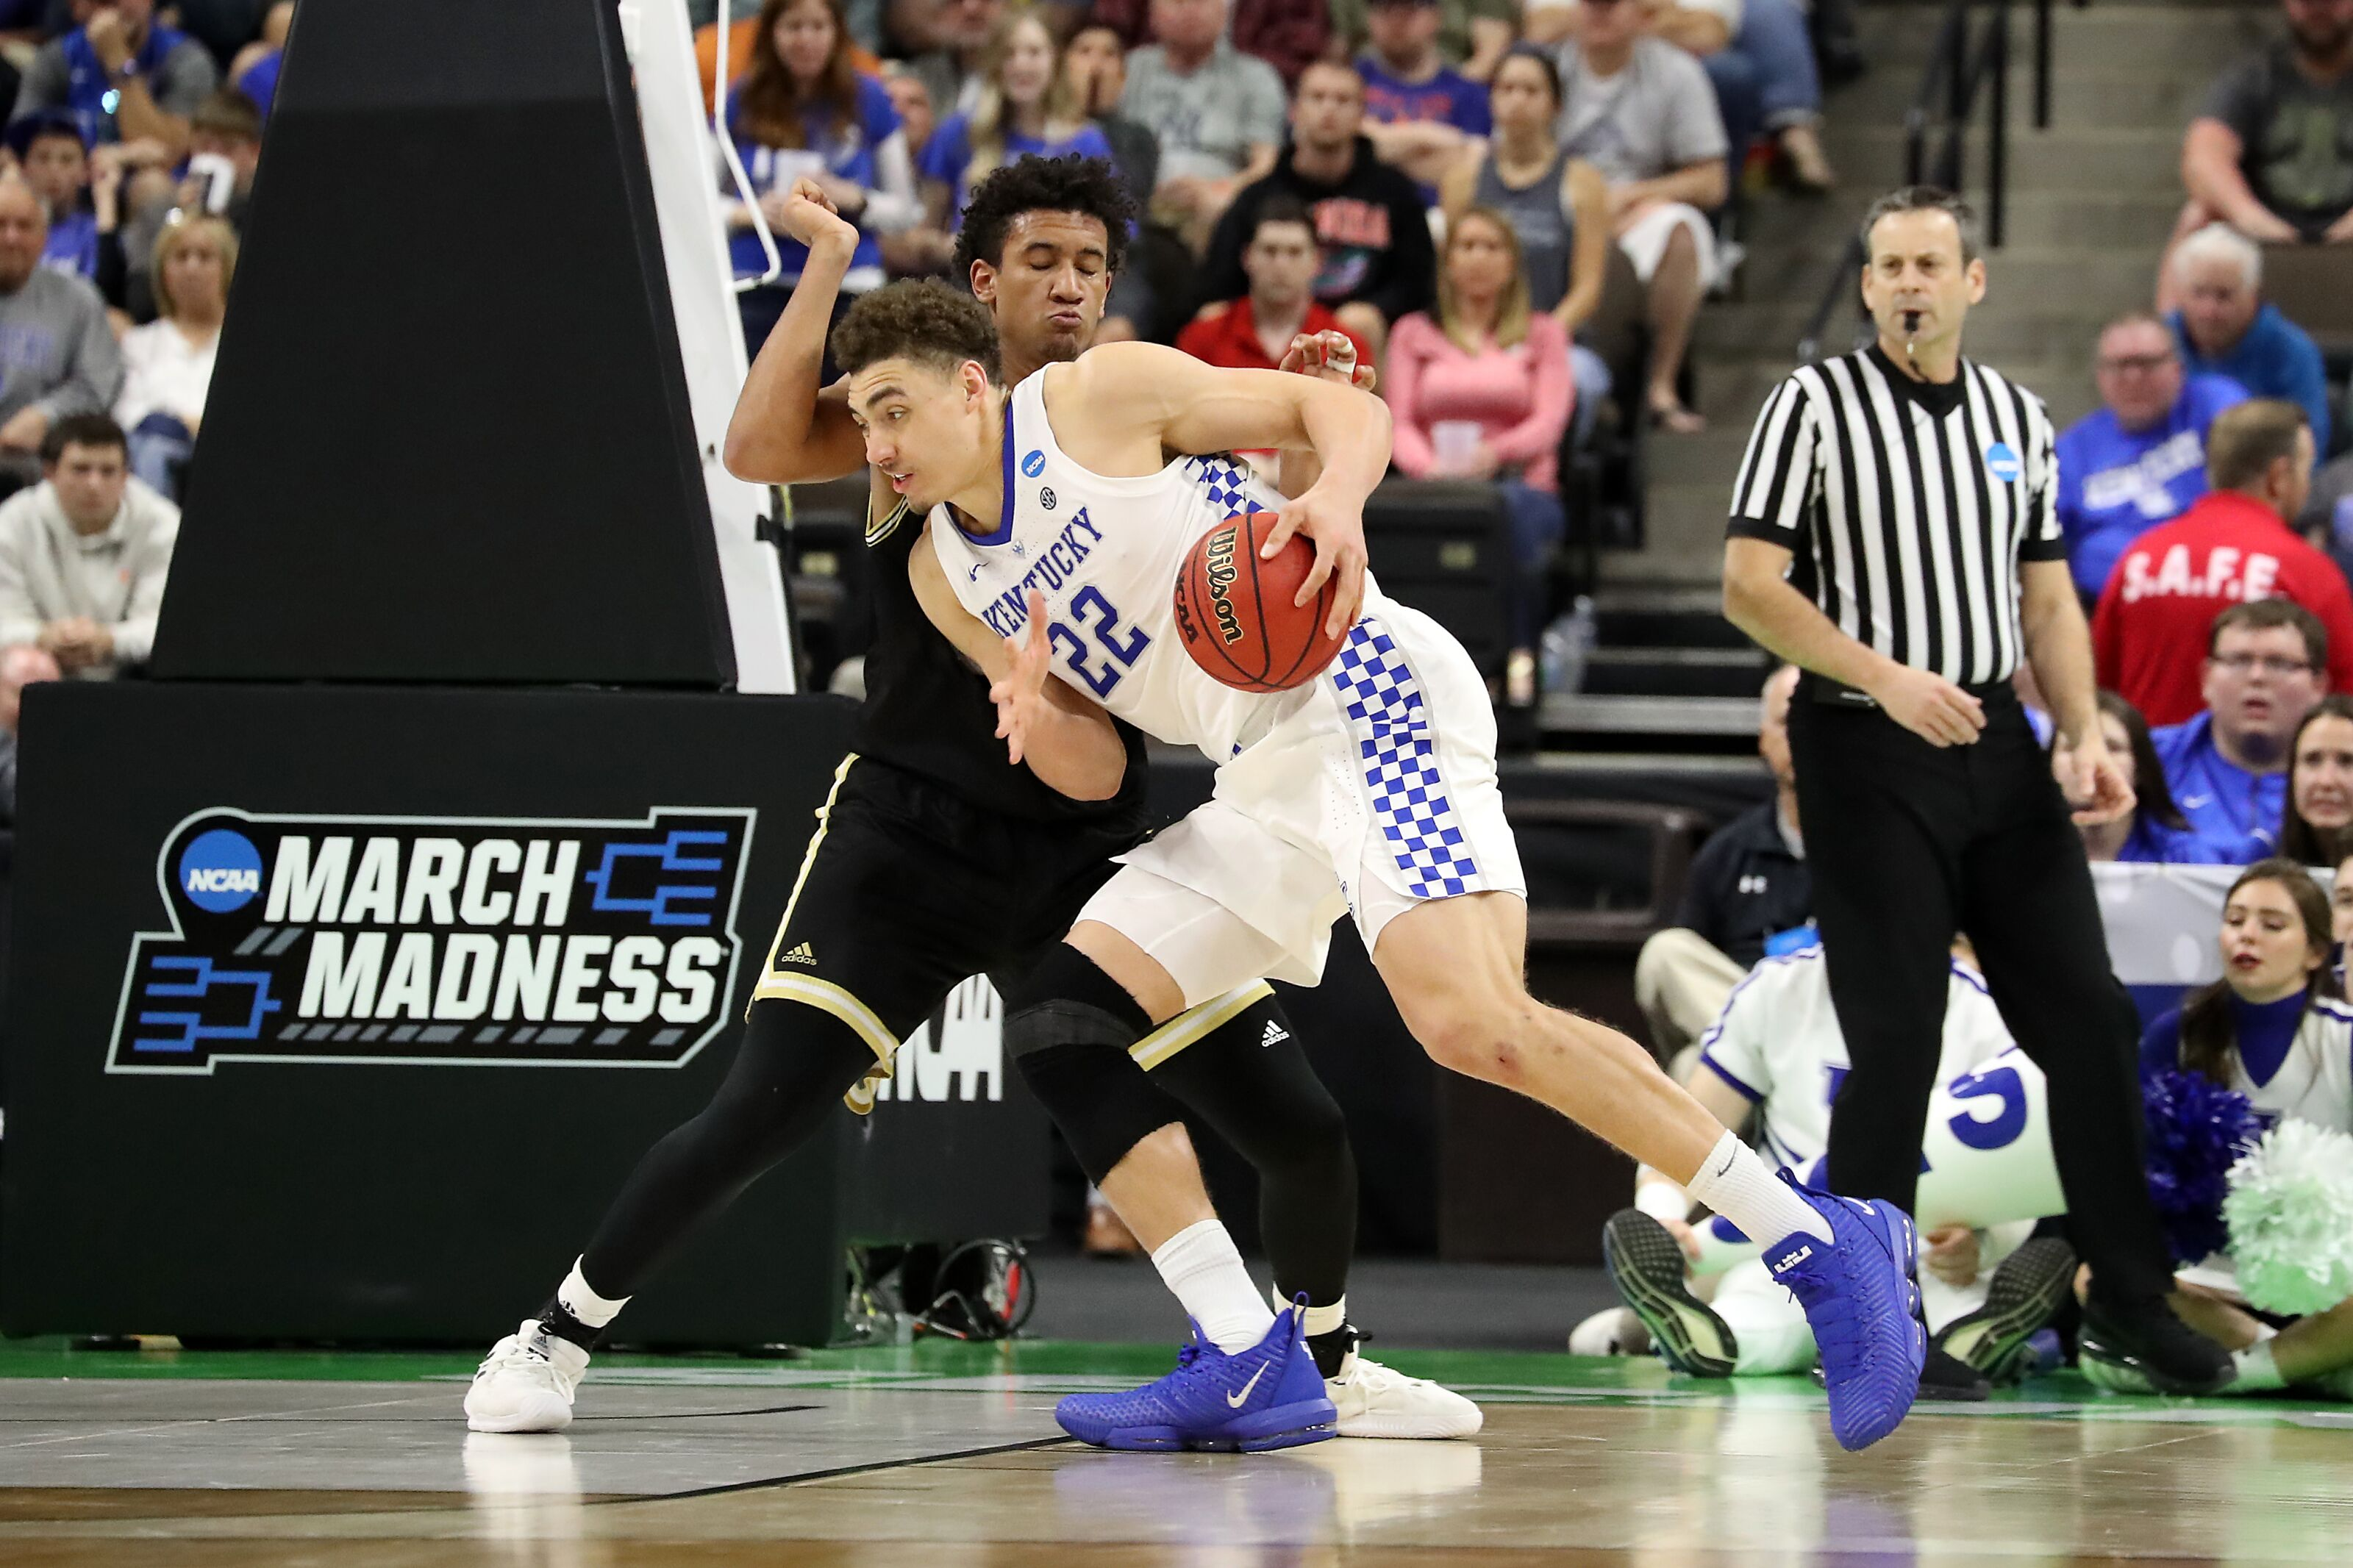 Kentucky Basketball Narrowly Escapes Wofford for Sweet 16 Spot